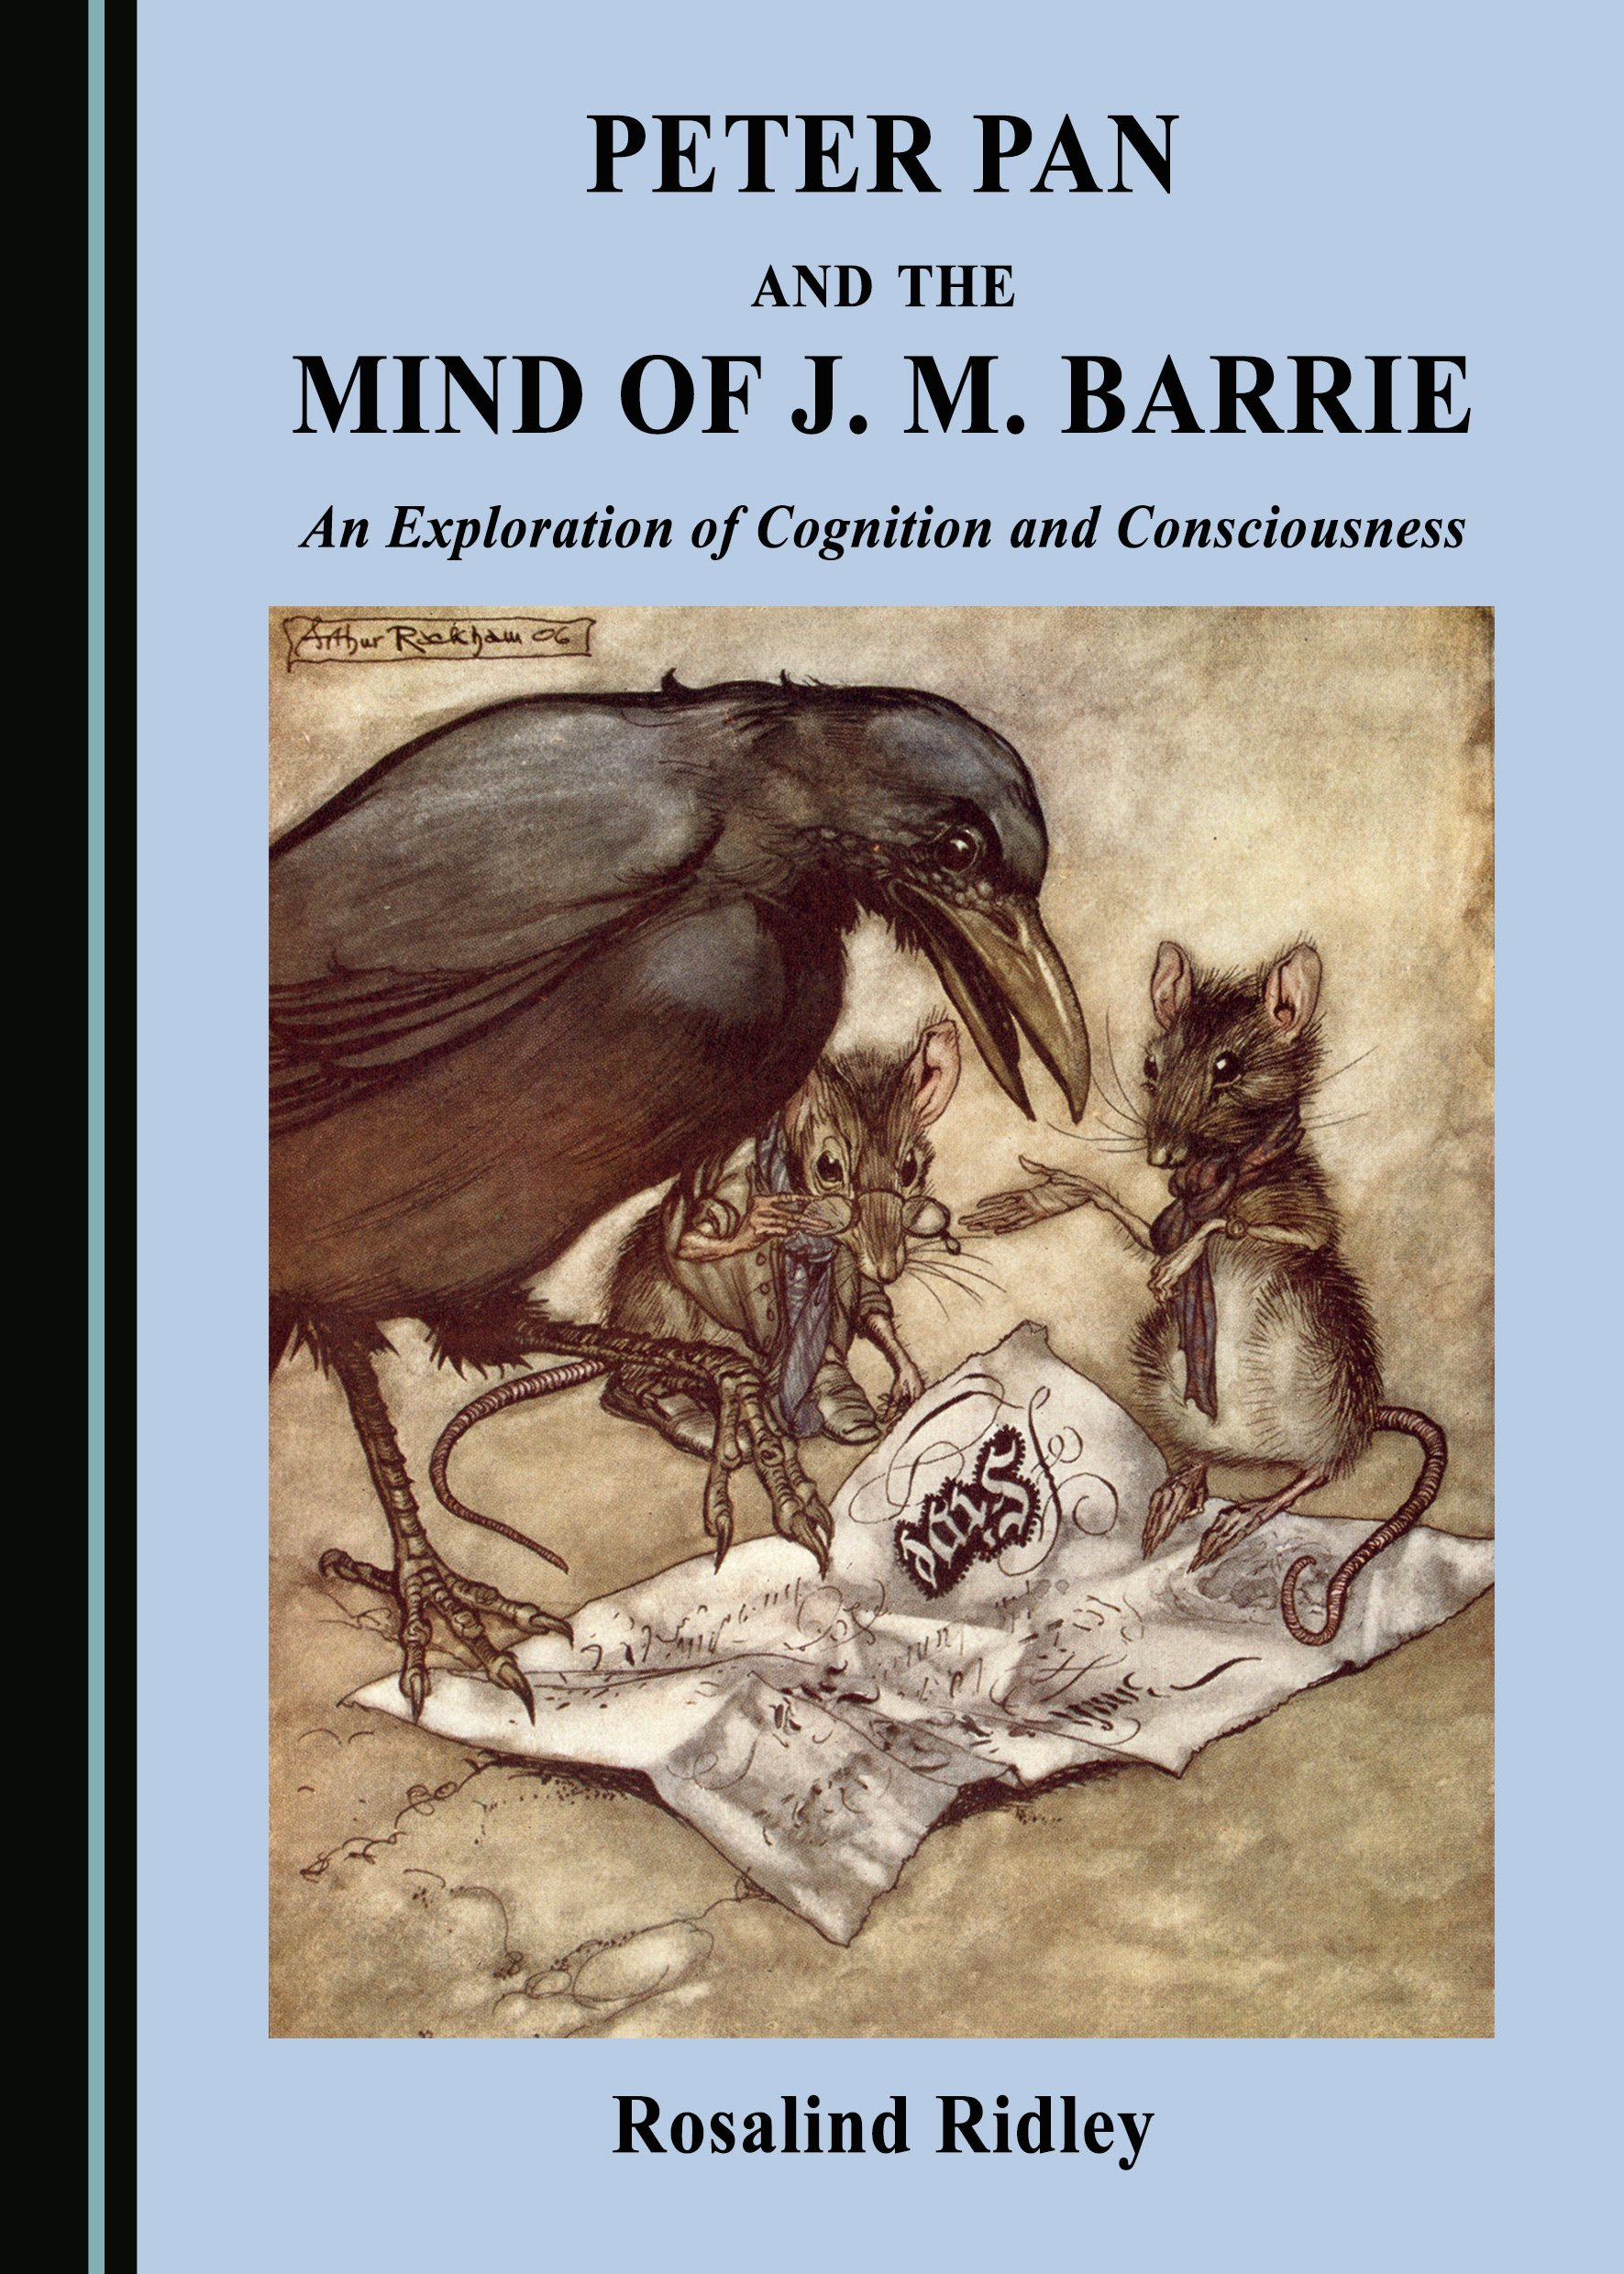 Peter Pan and the Mind of J. M. Barrie: An Exploration of Cognition and Consciousness